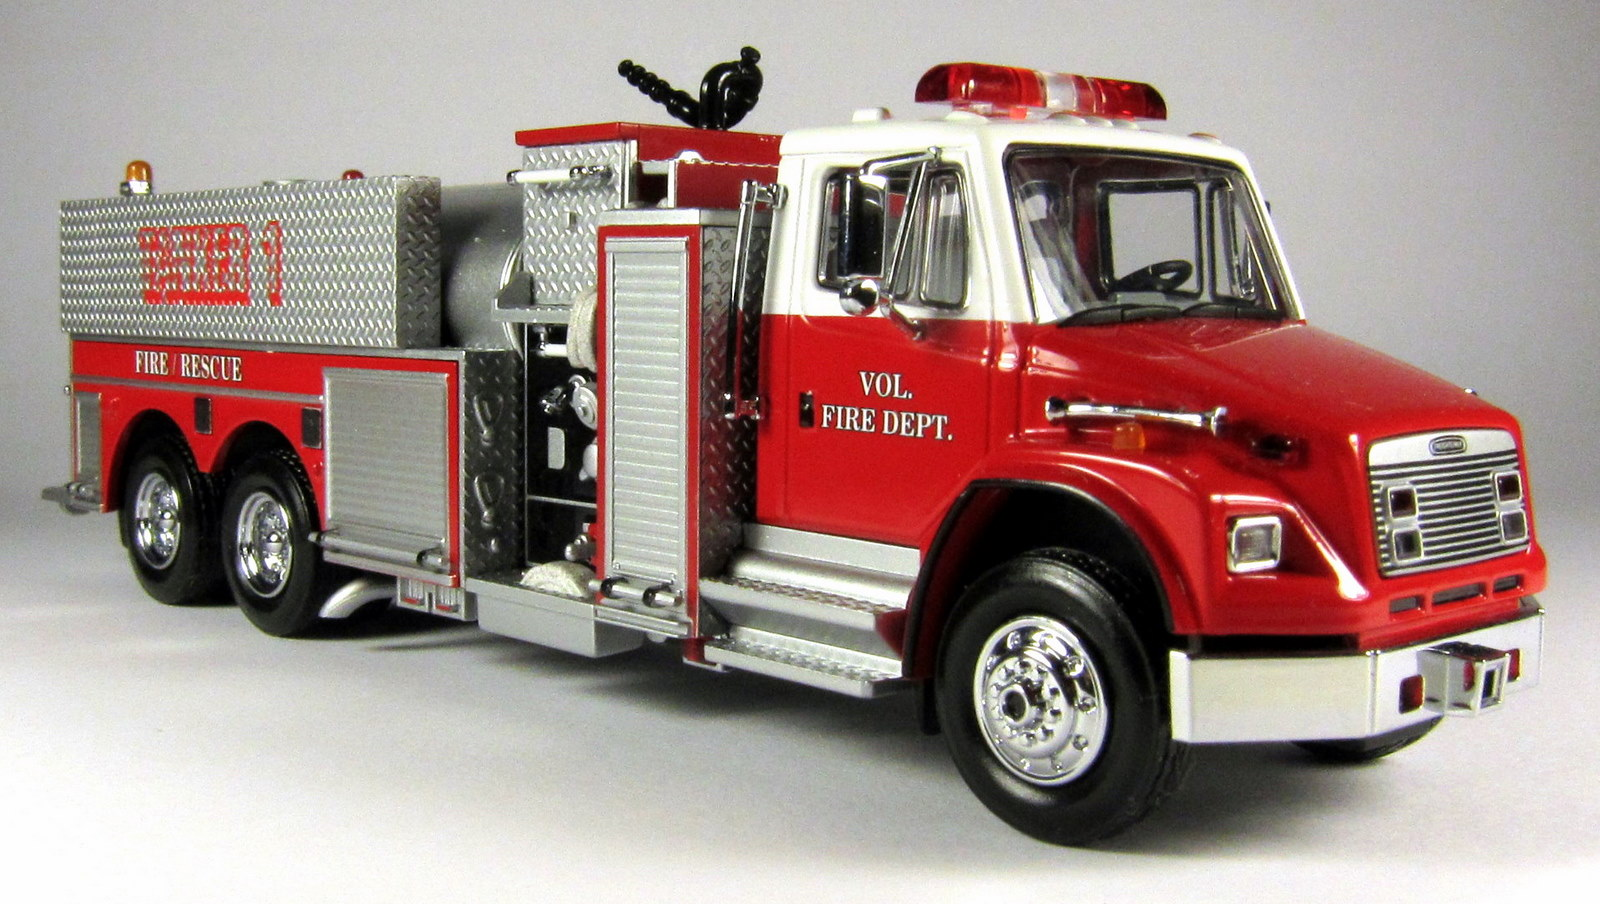 code 3 collectibles Club Sutphen Pumper. $ 0 bids. Mint in dome. Never opened. See all results. Browse Related. Code 3 Fire Trucks. Code 3 FDNY. Code 3 Kitbash. Code 3 Fire. Code 3 Chicago. About Code 3 Collectibles. Shop the extensive inventory of diecast toy vehicles including Code 3 diecast cars, trucks and vans!